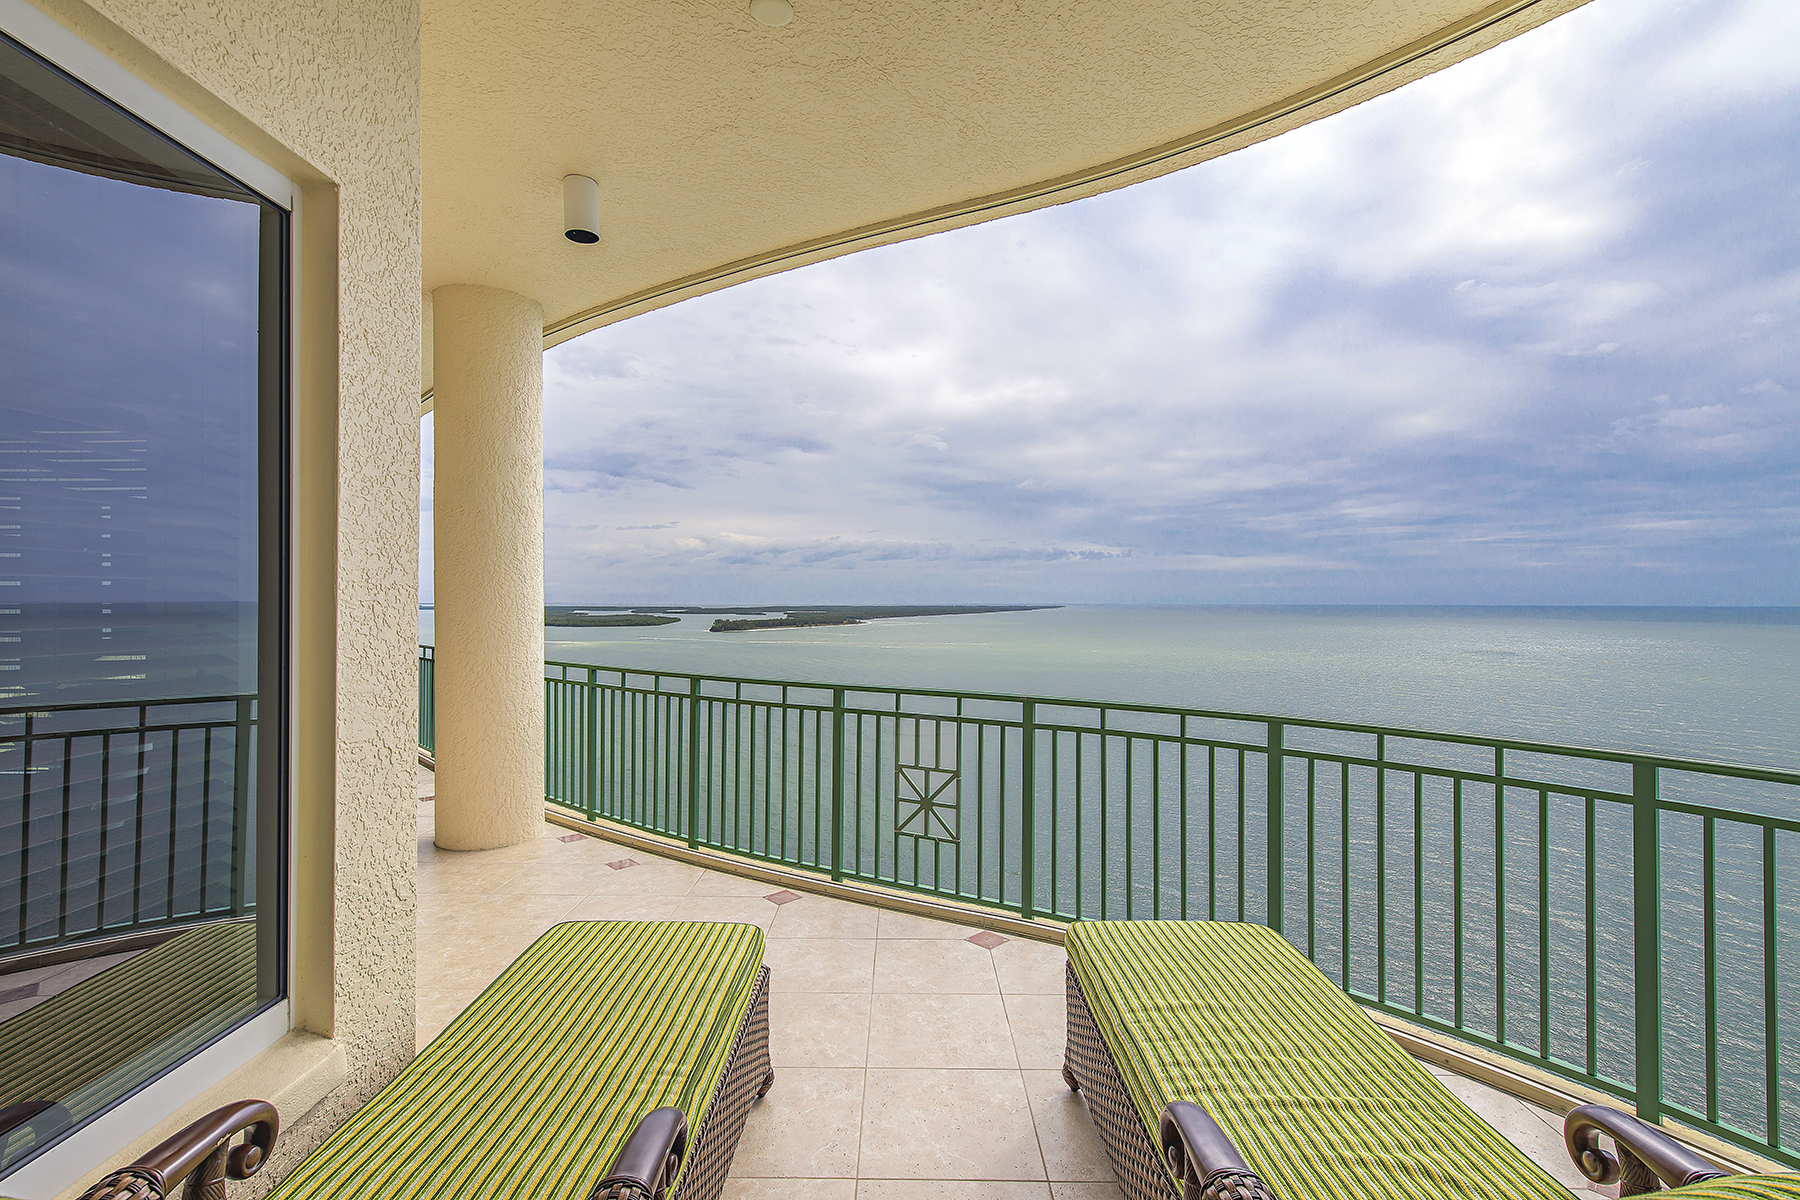 Condominium for Sale at CAPE MARCO - CAPE MARCO 970 Cape Marco Dr 1906 Marco Island, Florida 34145 United States